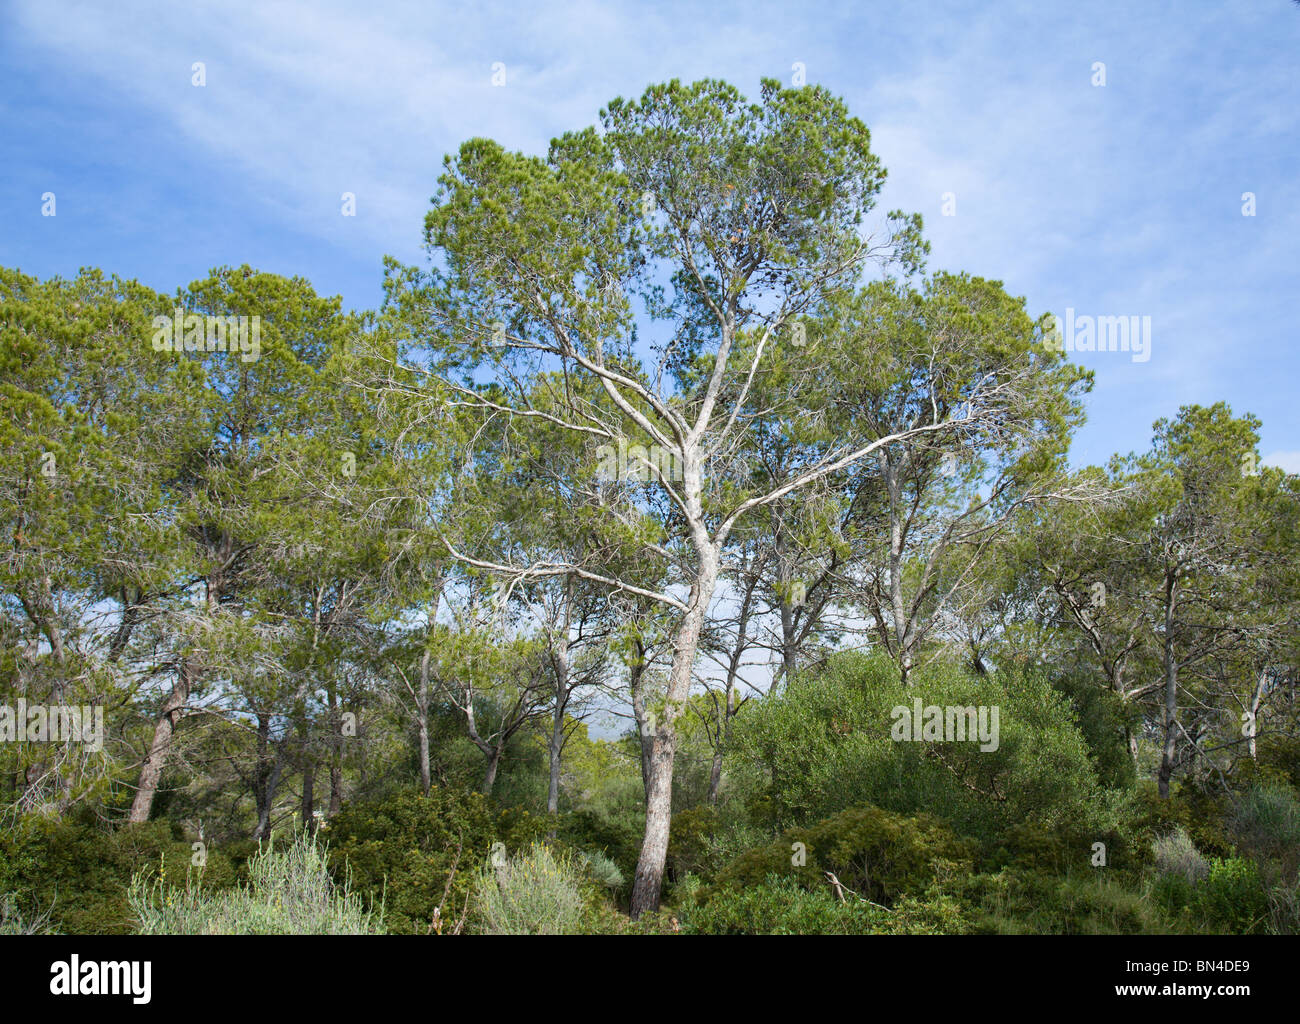 group of The Aleppo Pines (Pinus halepensis); native to Mediterranean - Stock Image